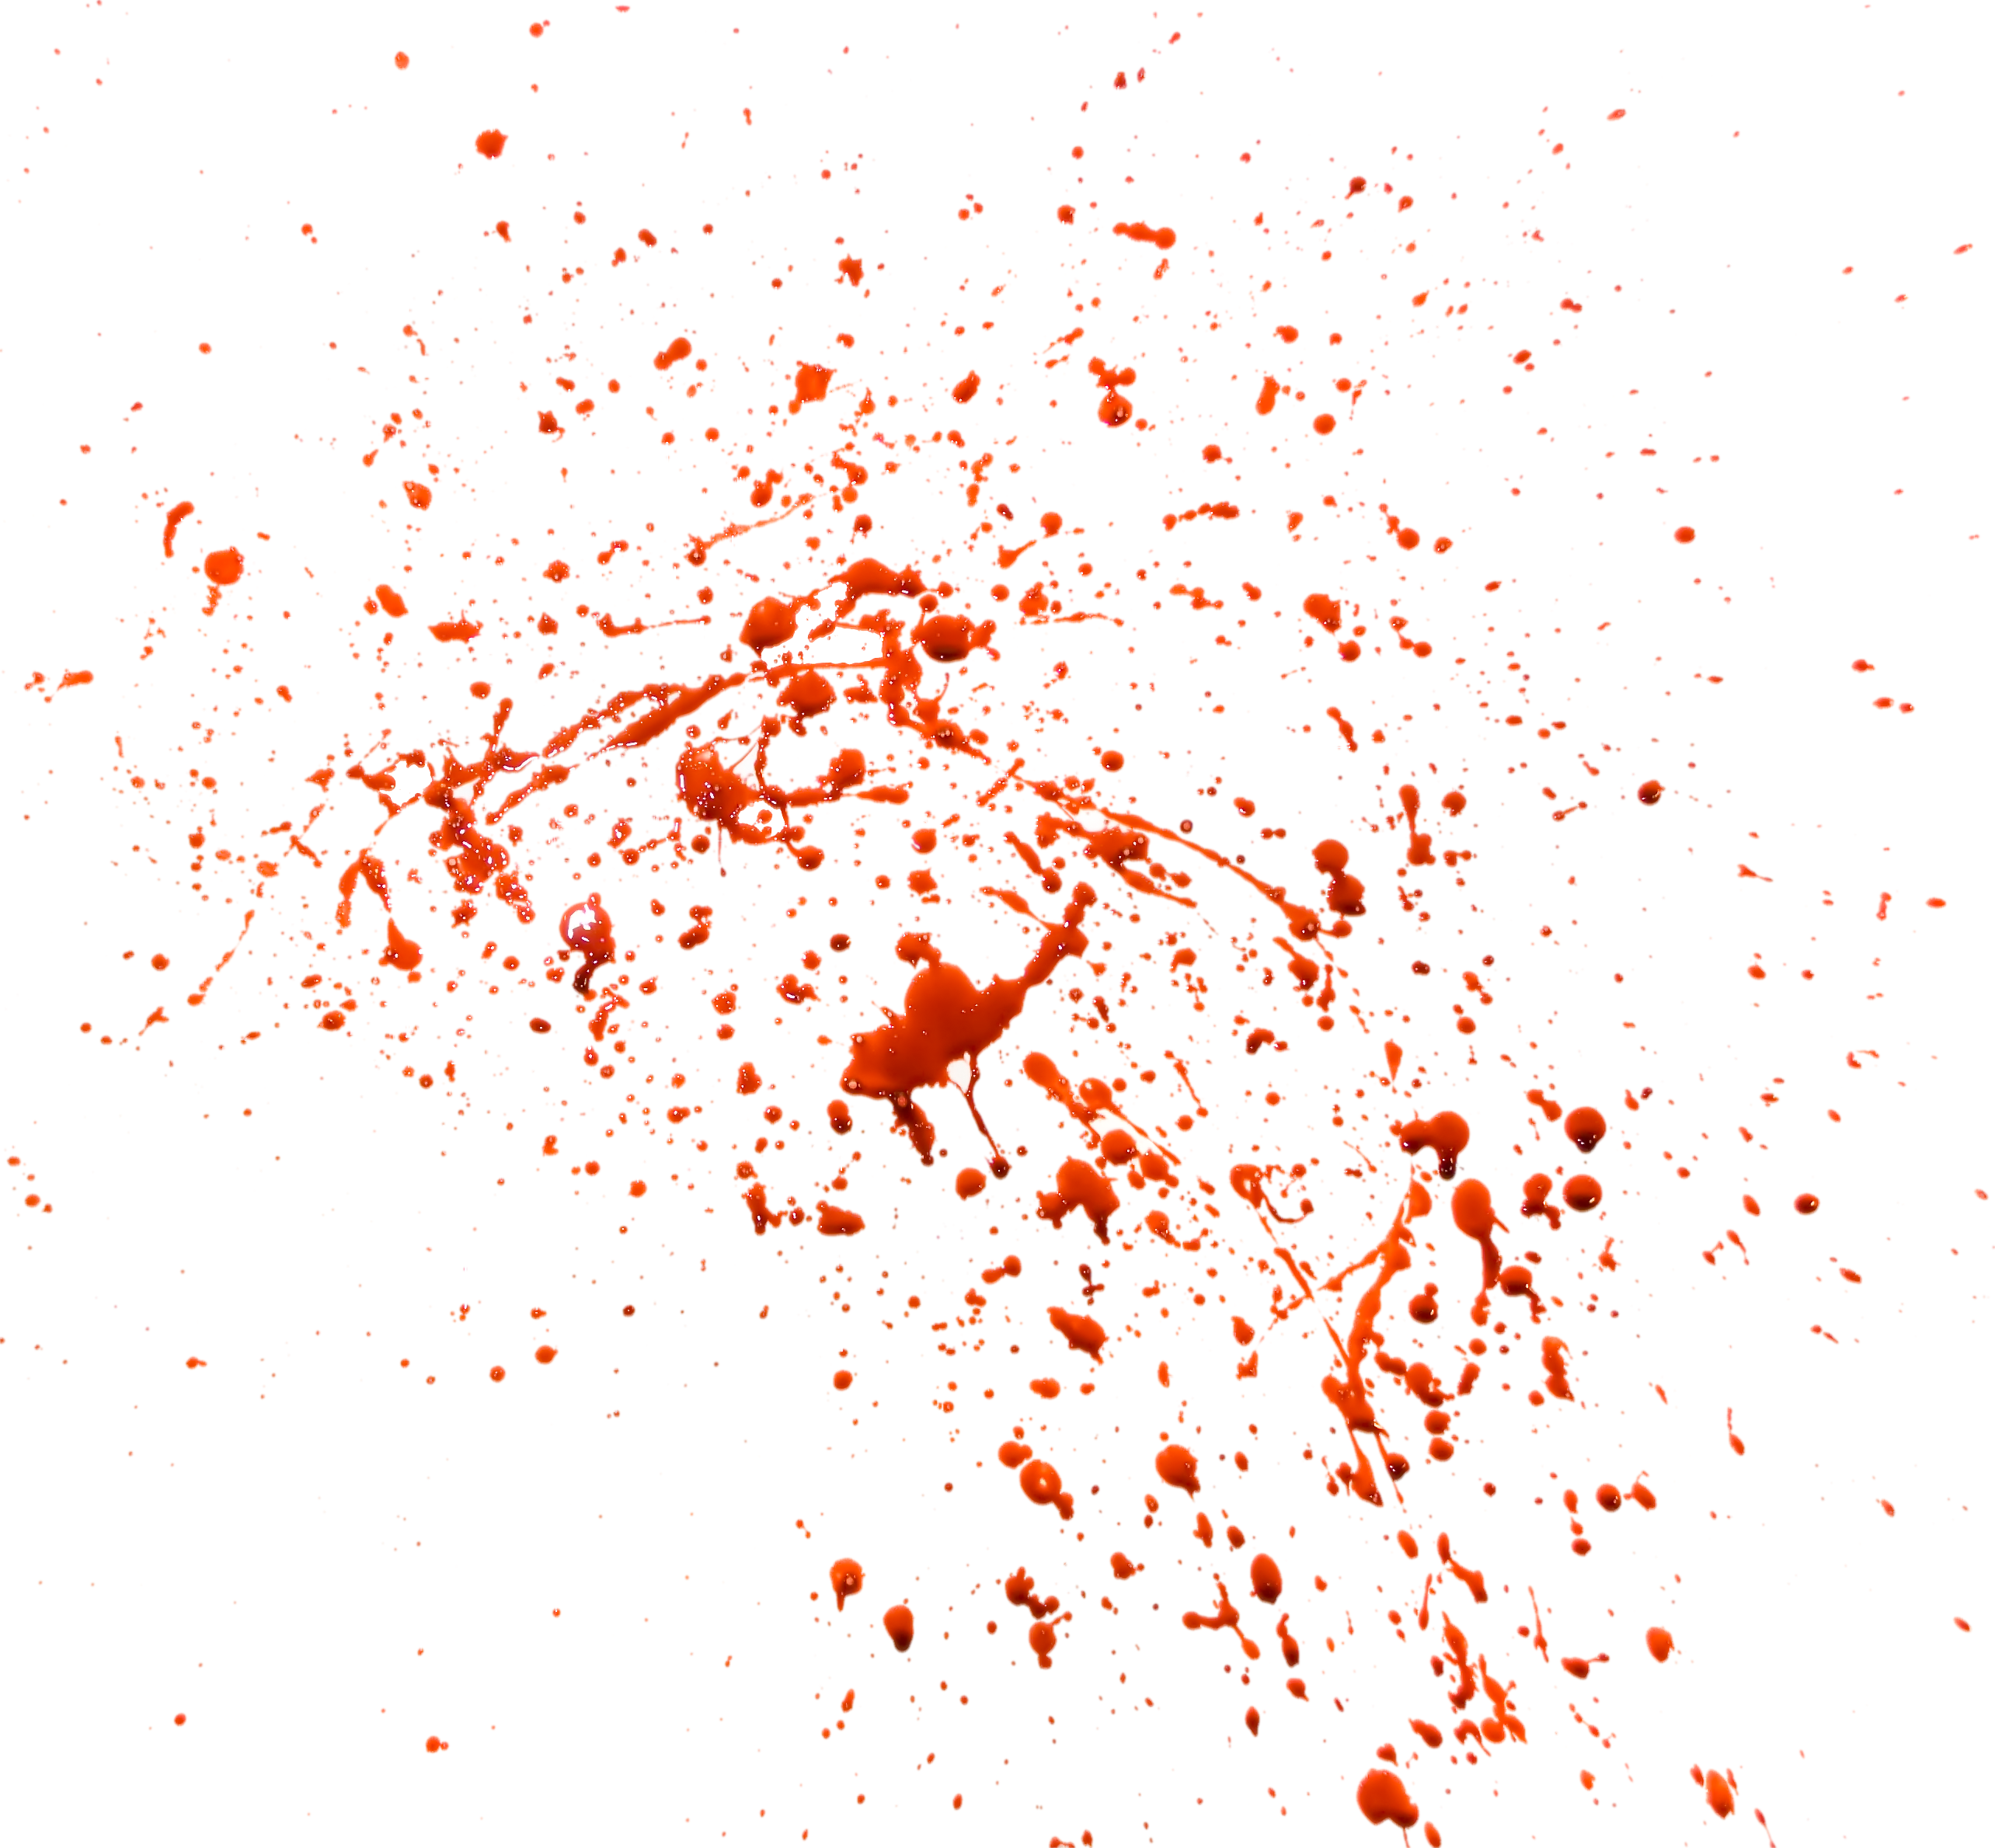 Blood splash png. Splatter transparent pictures free